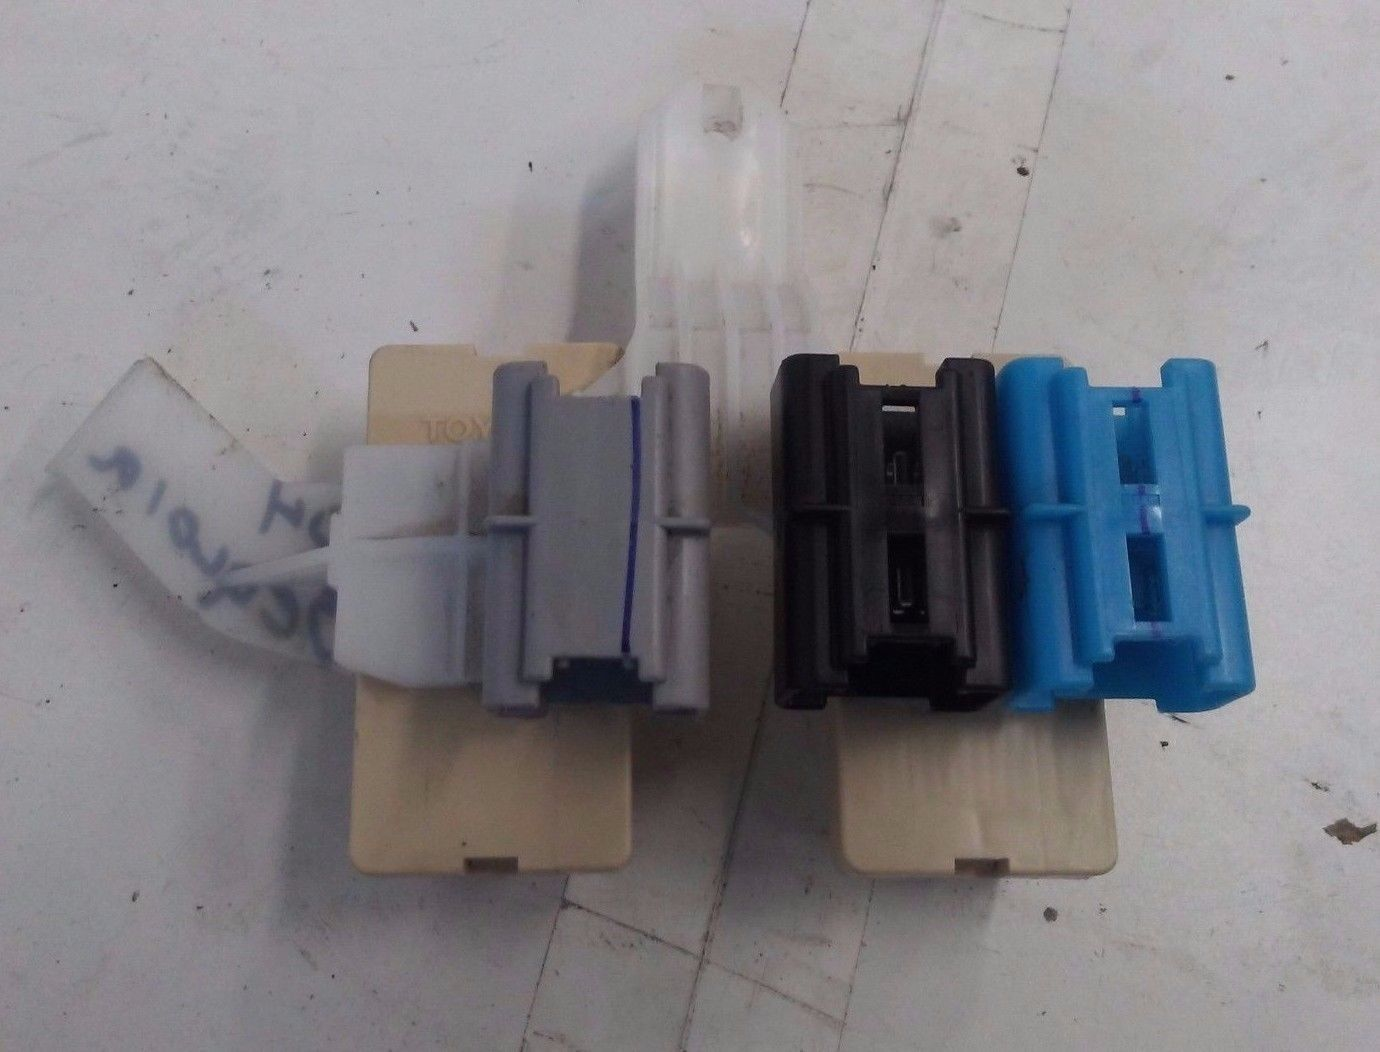 hight resolution of dk608129 2001 2006 toyota sequoia interior fuse box relay panel connectors oem 2001 2002 2003